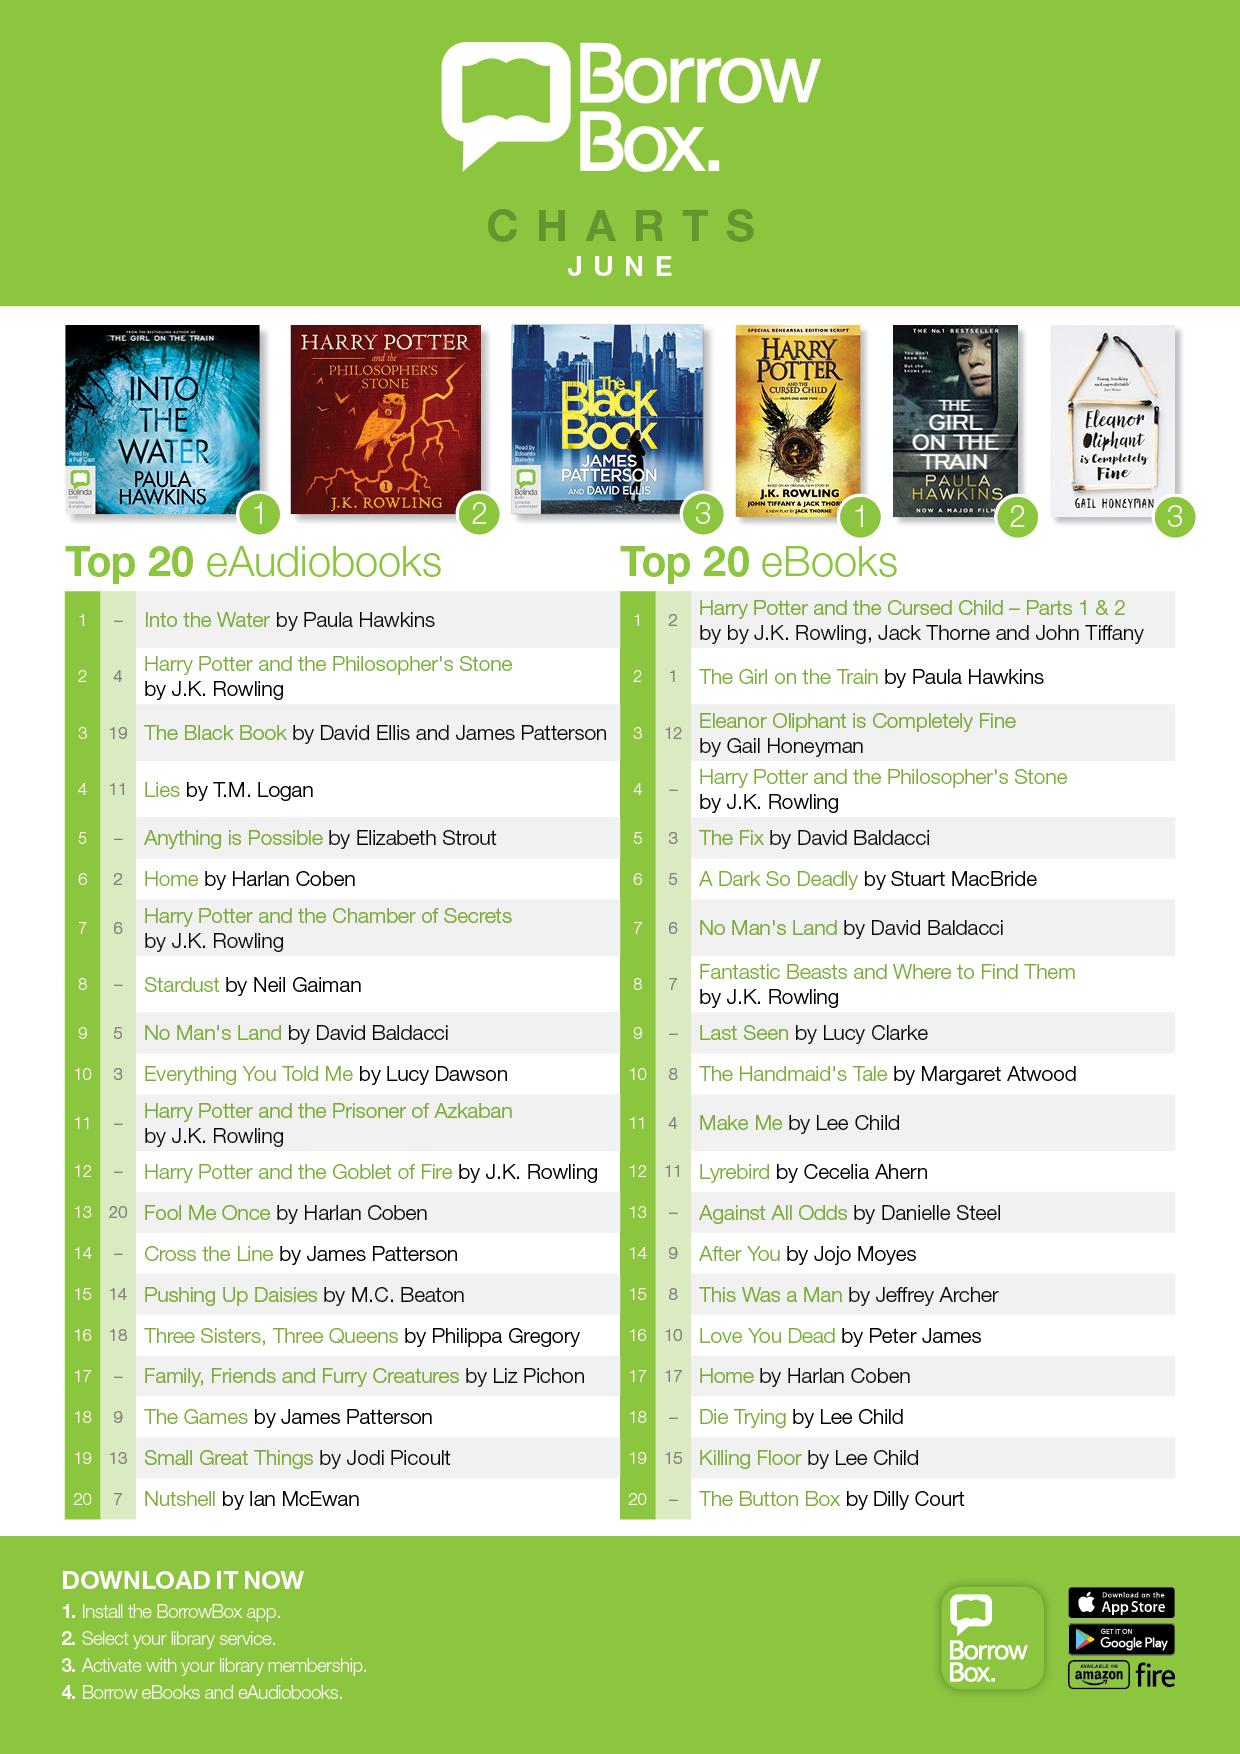 Top eBooks of the month - July